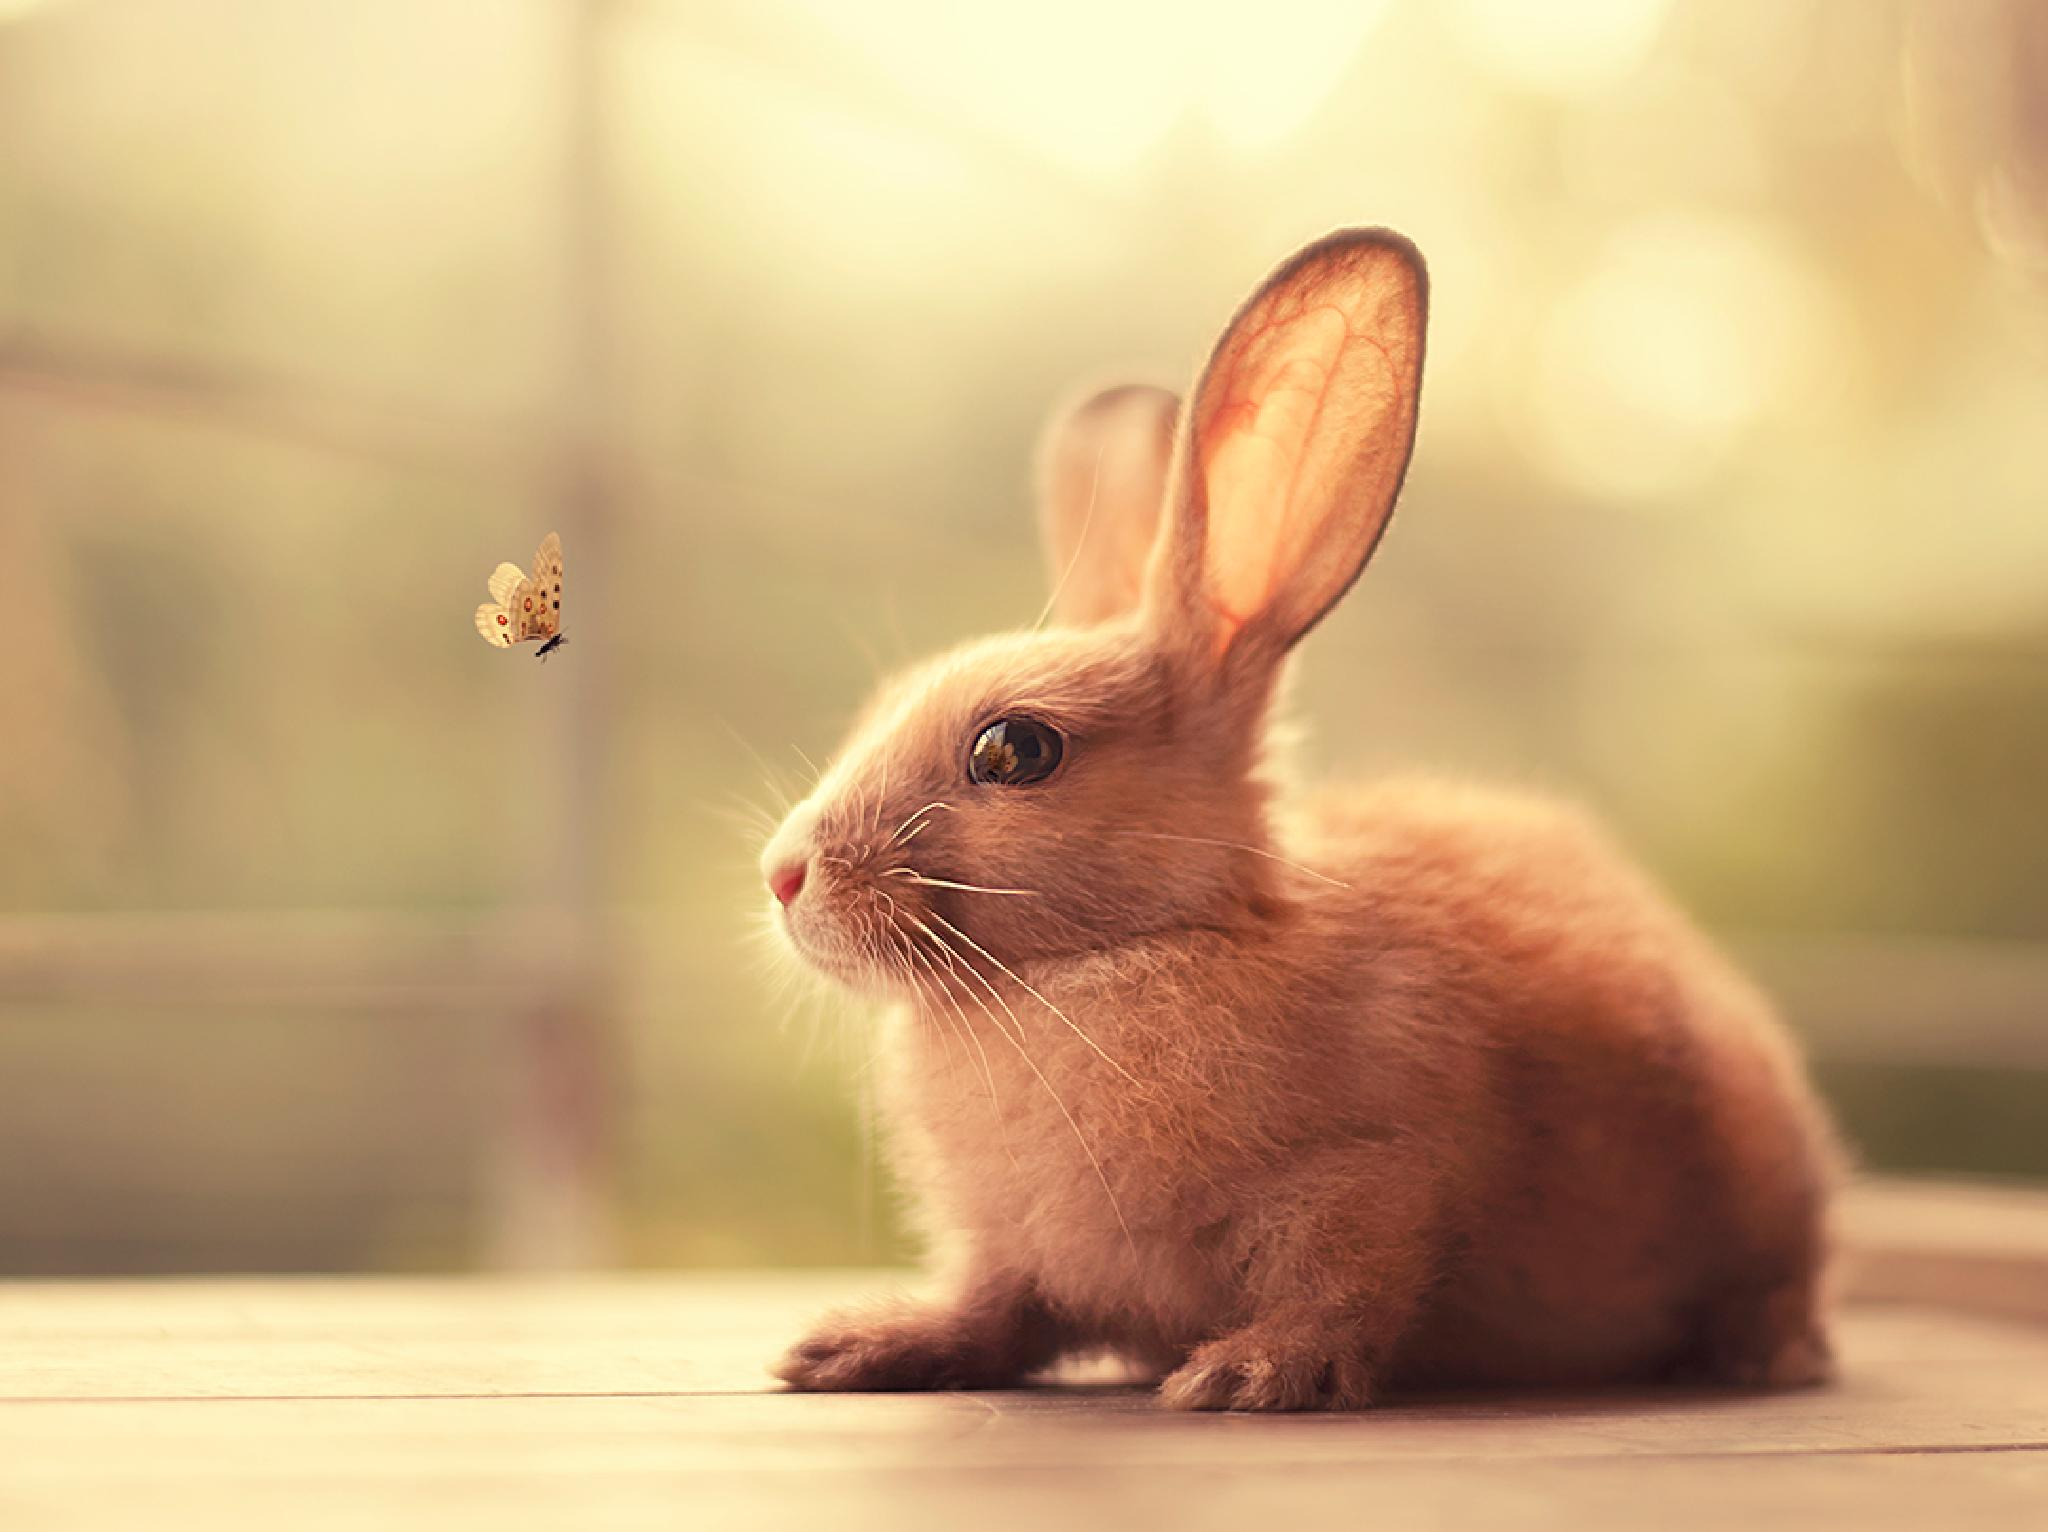 Hello There! by Ashraful Arefin